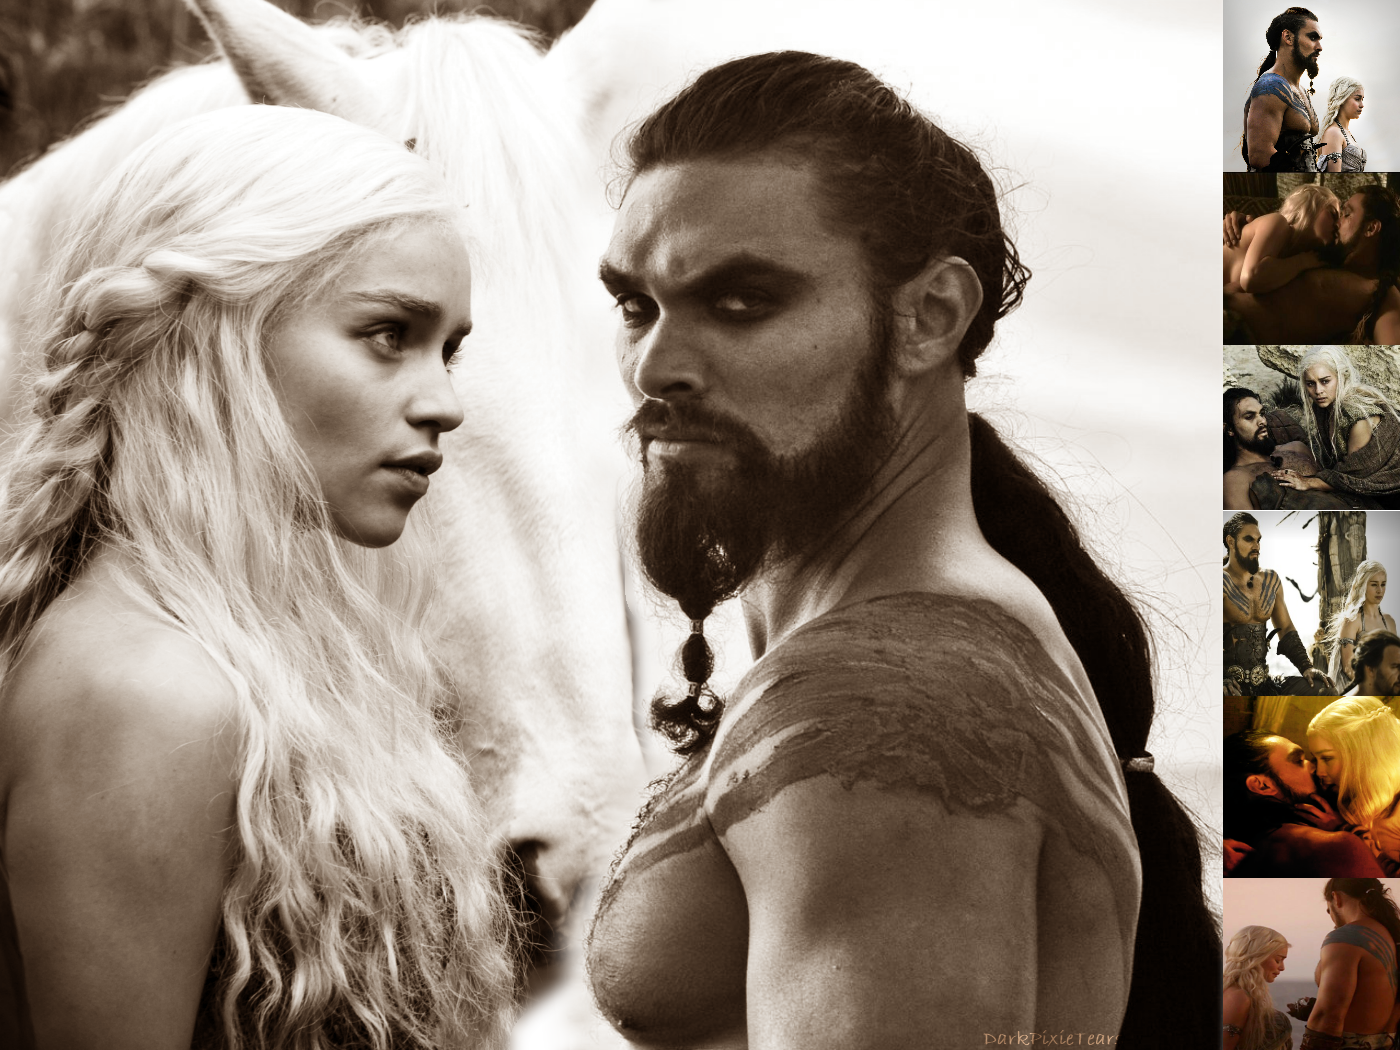 khal drogo and daenerys relationship quotes